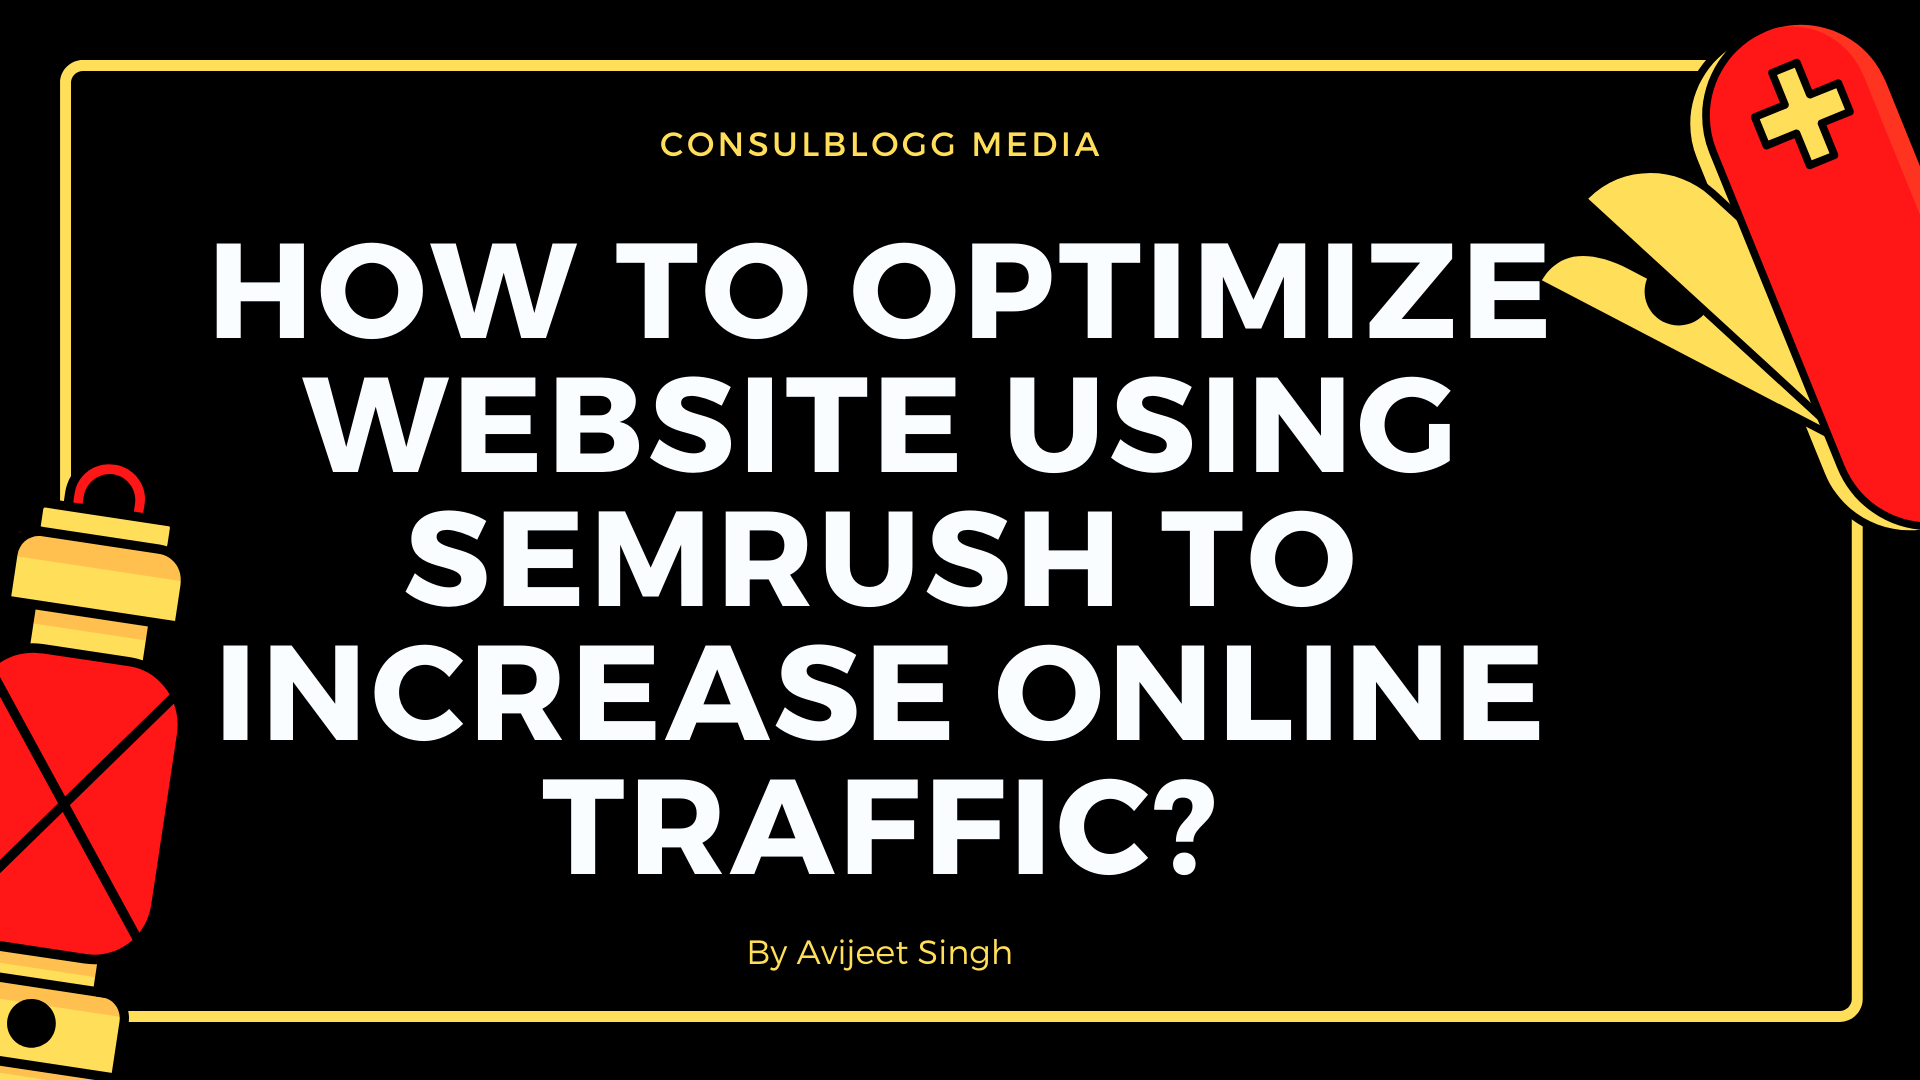 How to optimize website using SEMrush to increase online traffic?